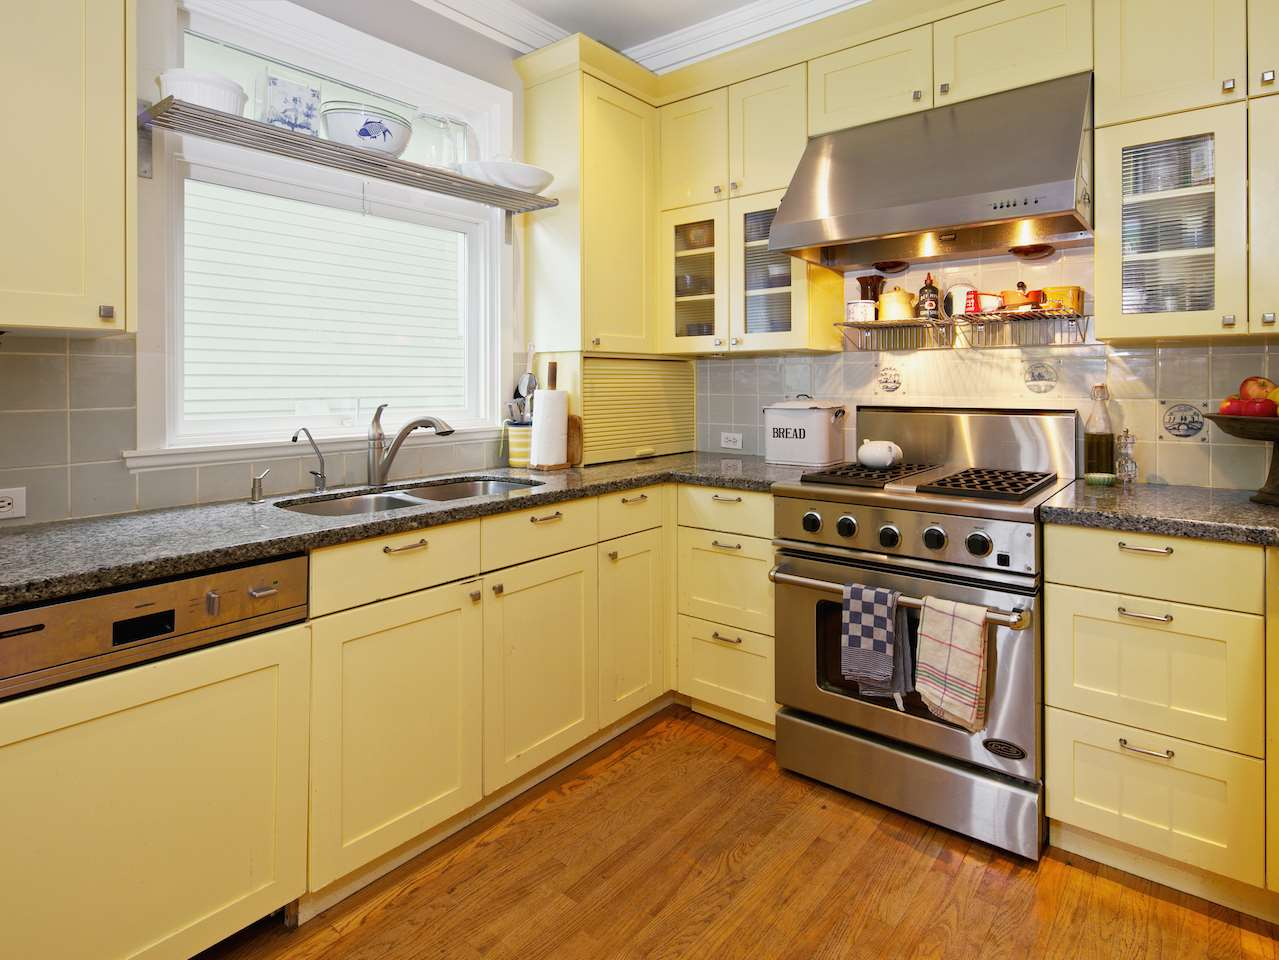 Photo 2: 1849 CREELMAN Avenue in Vancouver: Kitsilano House for sale (Vancouver West)  : MLS® # R2045415